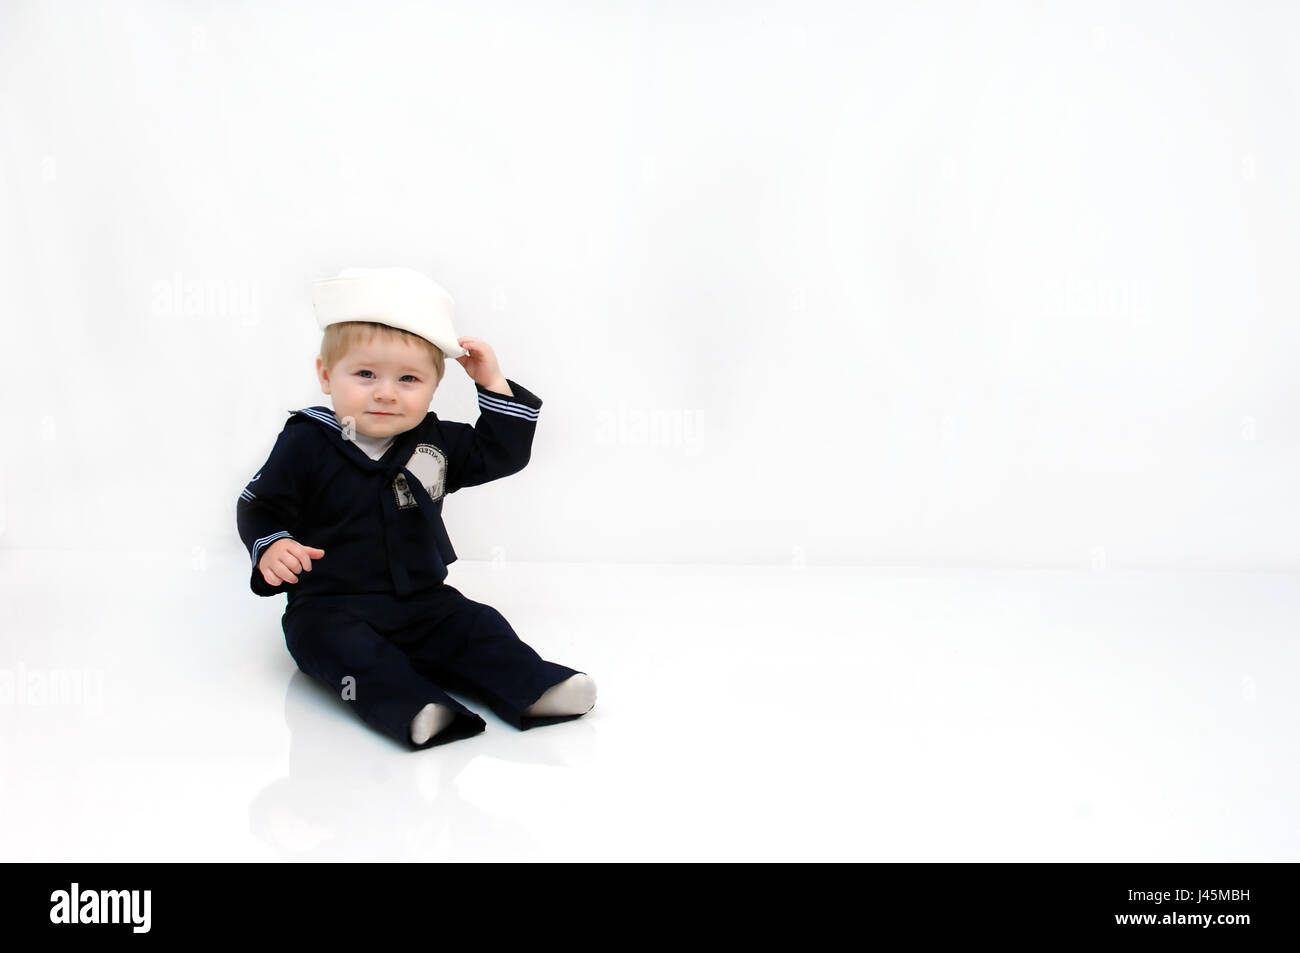 02f4ea2f4 Baby boy is wearing a navy, sailor costume. He is smiling and Stock ...